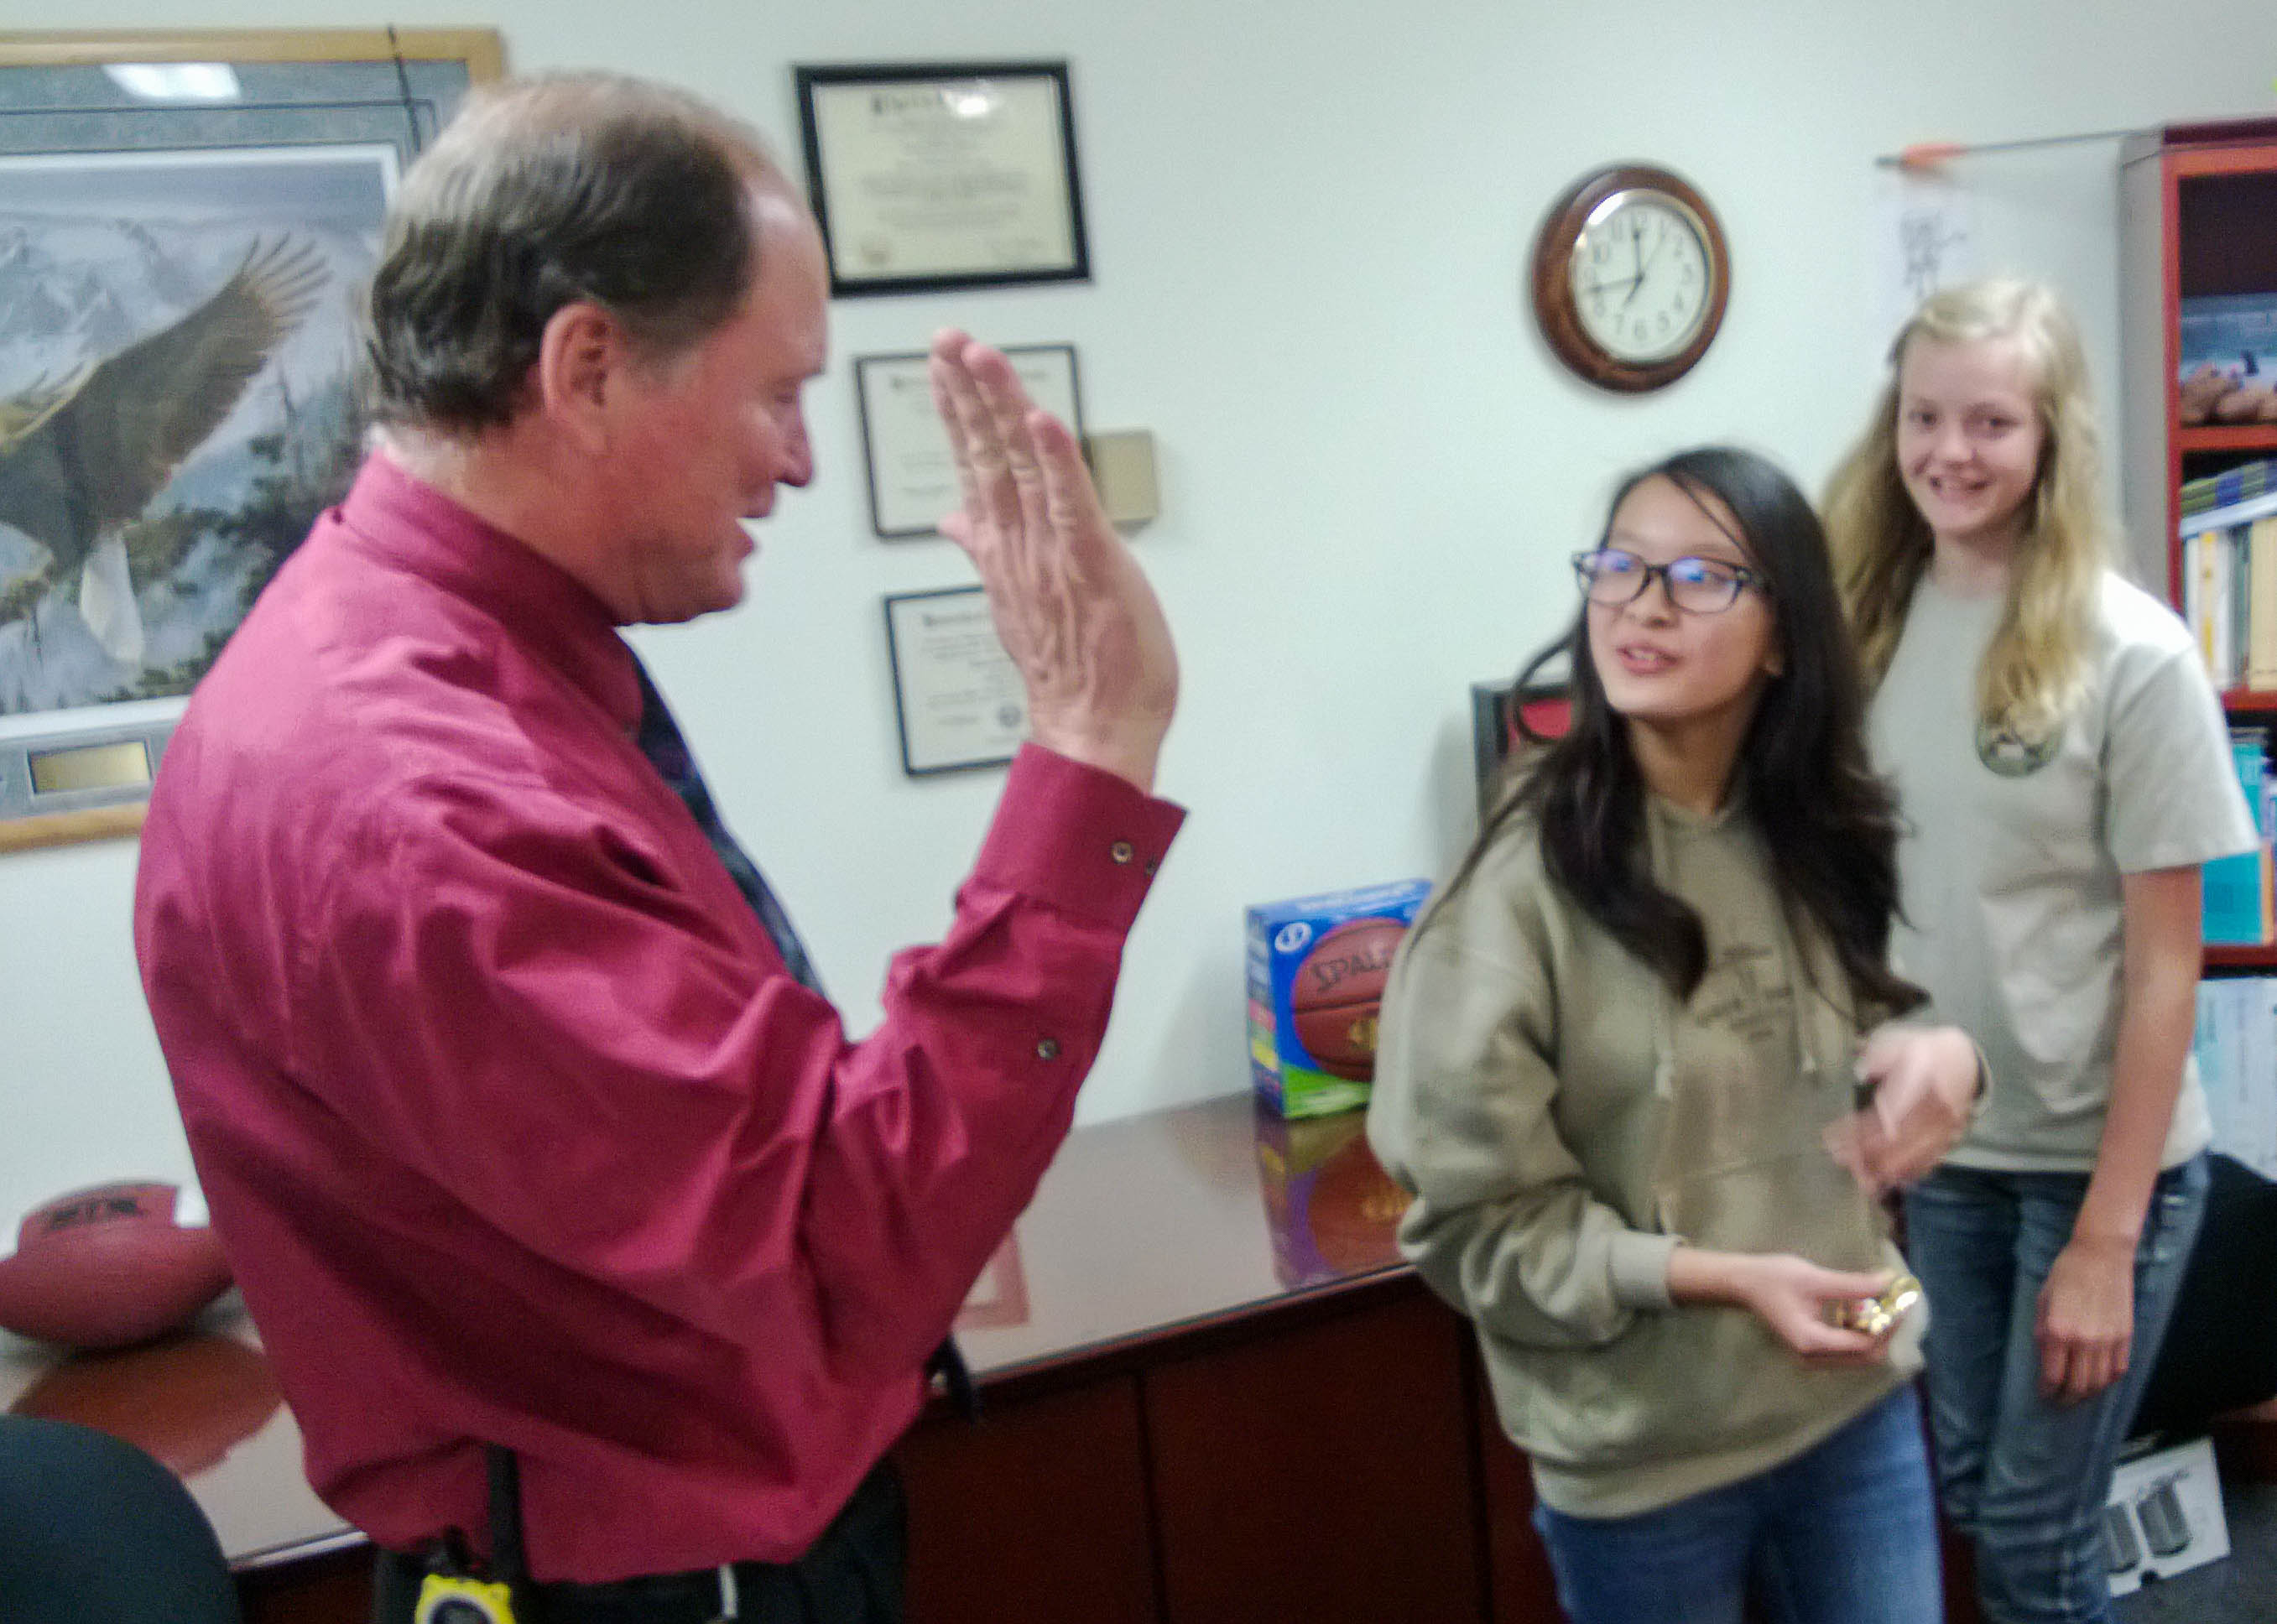 Principal Tom Milliron high fives some Floyd Dryden Middle School students in his office on Sept. 19, 2013. (Photo by Jeremy Hsieh/KTOO)